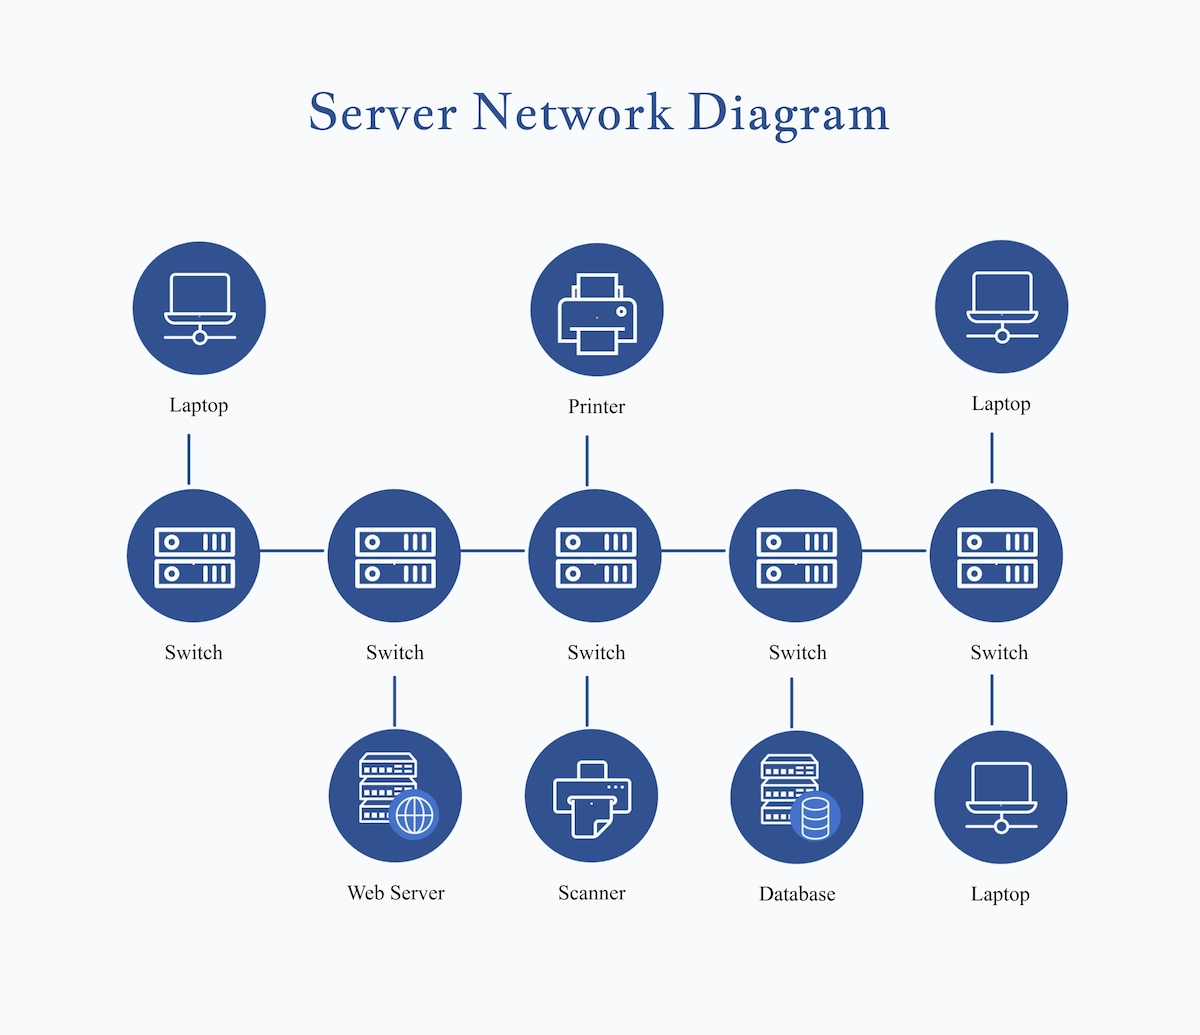 Computer network diagram network topology template microsoft visio,. How To Make A Flowchart Beginner S Guide Free Templates